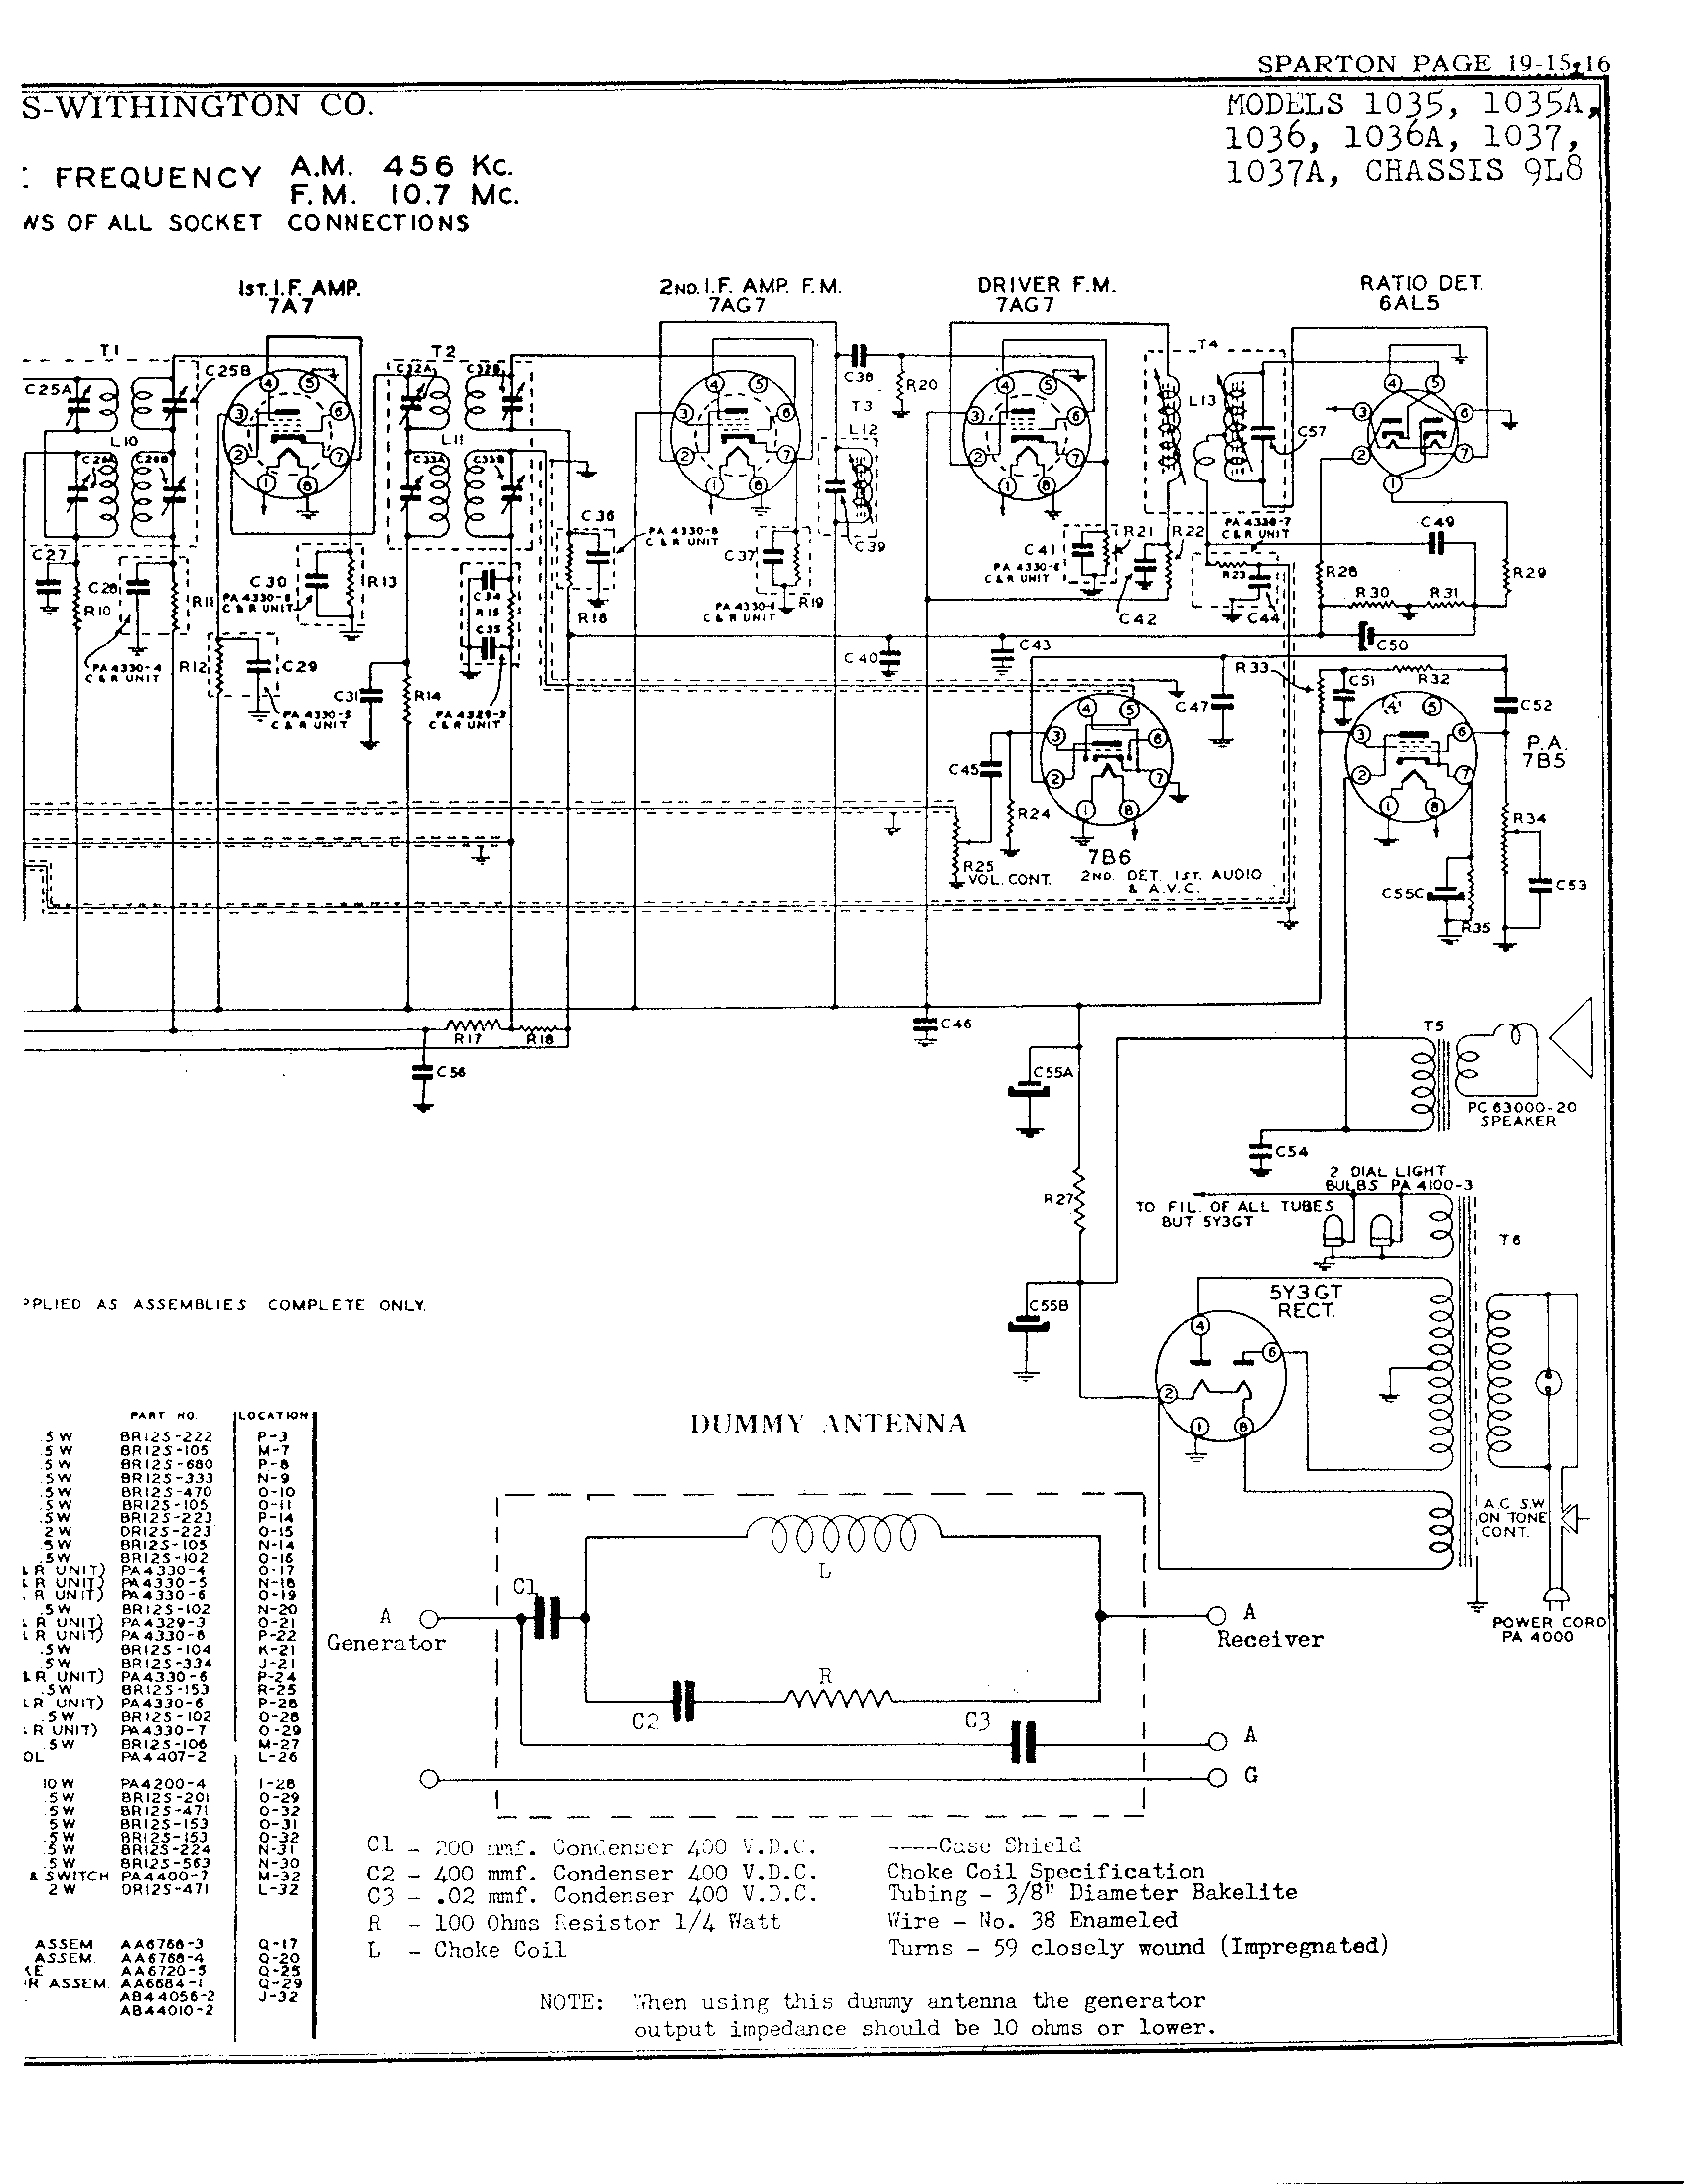 Sparks Withington Co 1036 Antique Electronic Supply Pa 200 Wiring Diagram Page 3 6479 Kb Rider Manual Volume 19